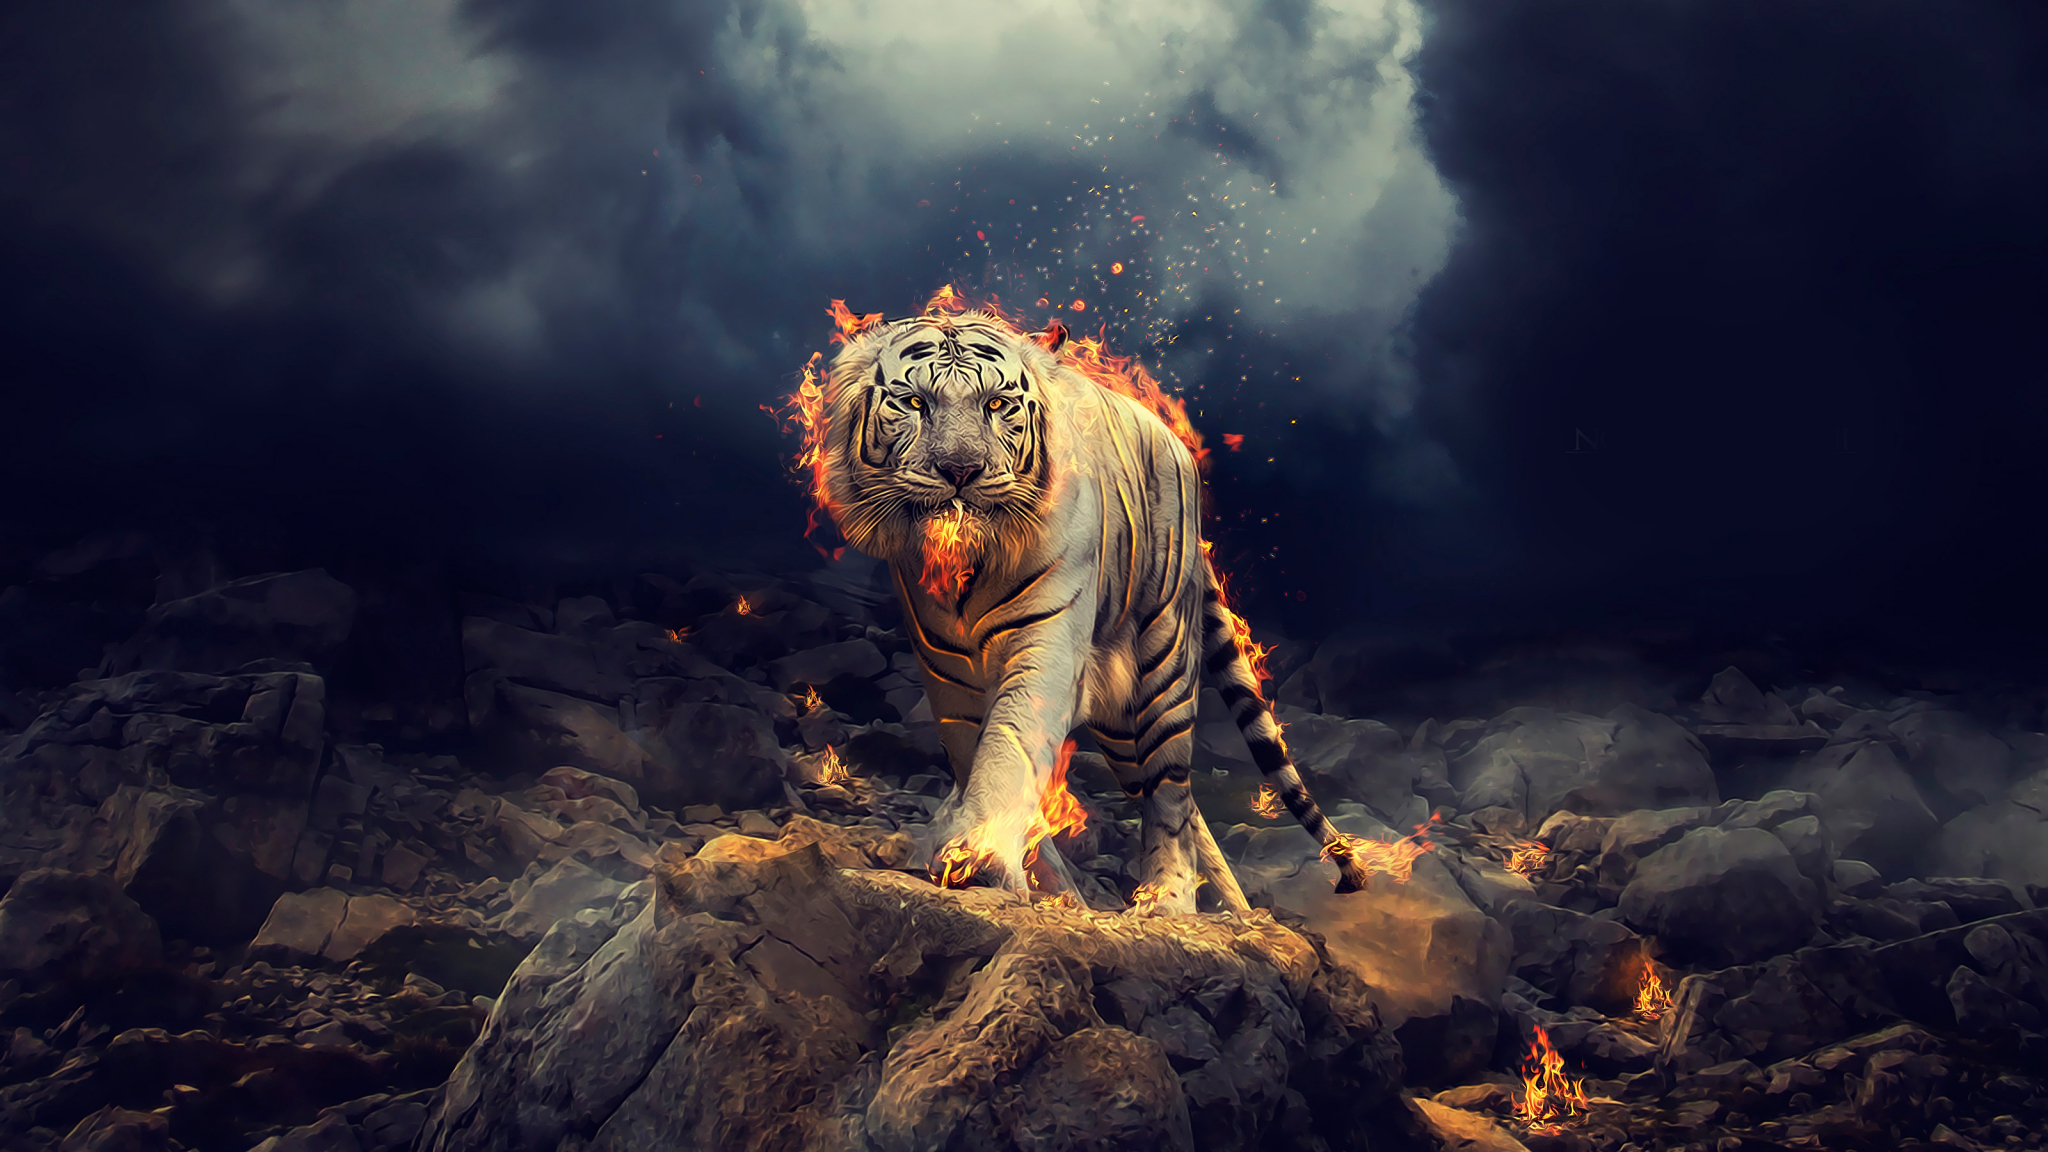 Download 2048x1152 Wallpaper Angry Raging White Tiger